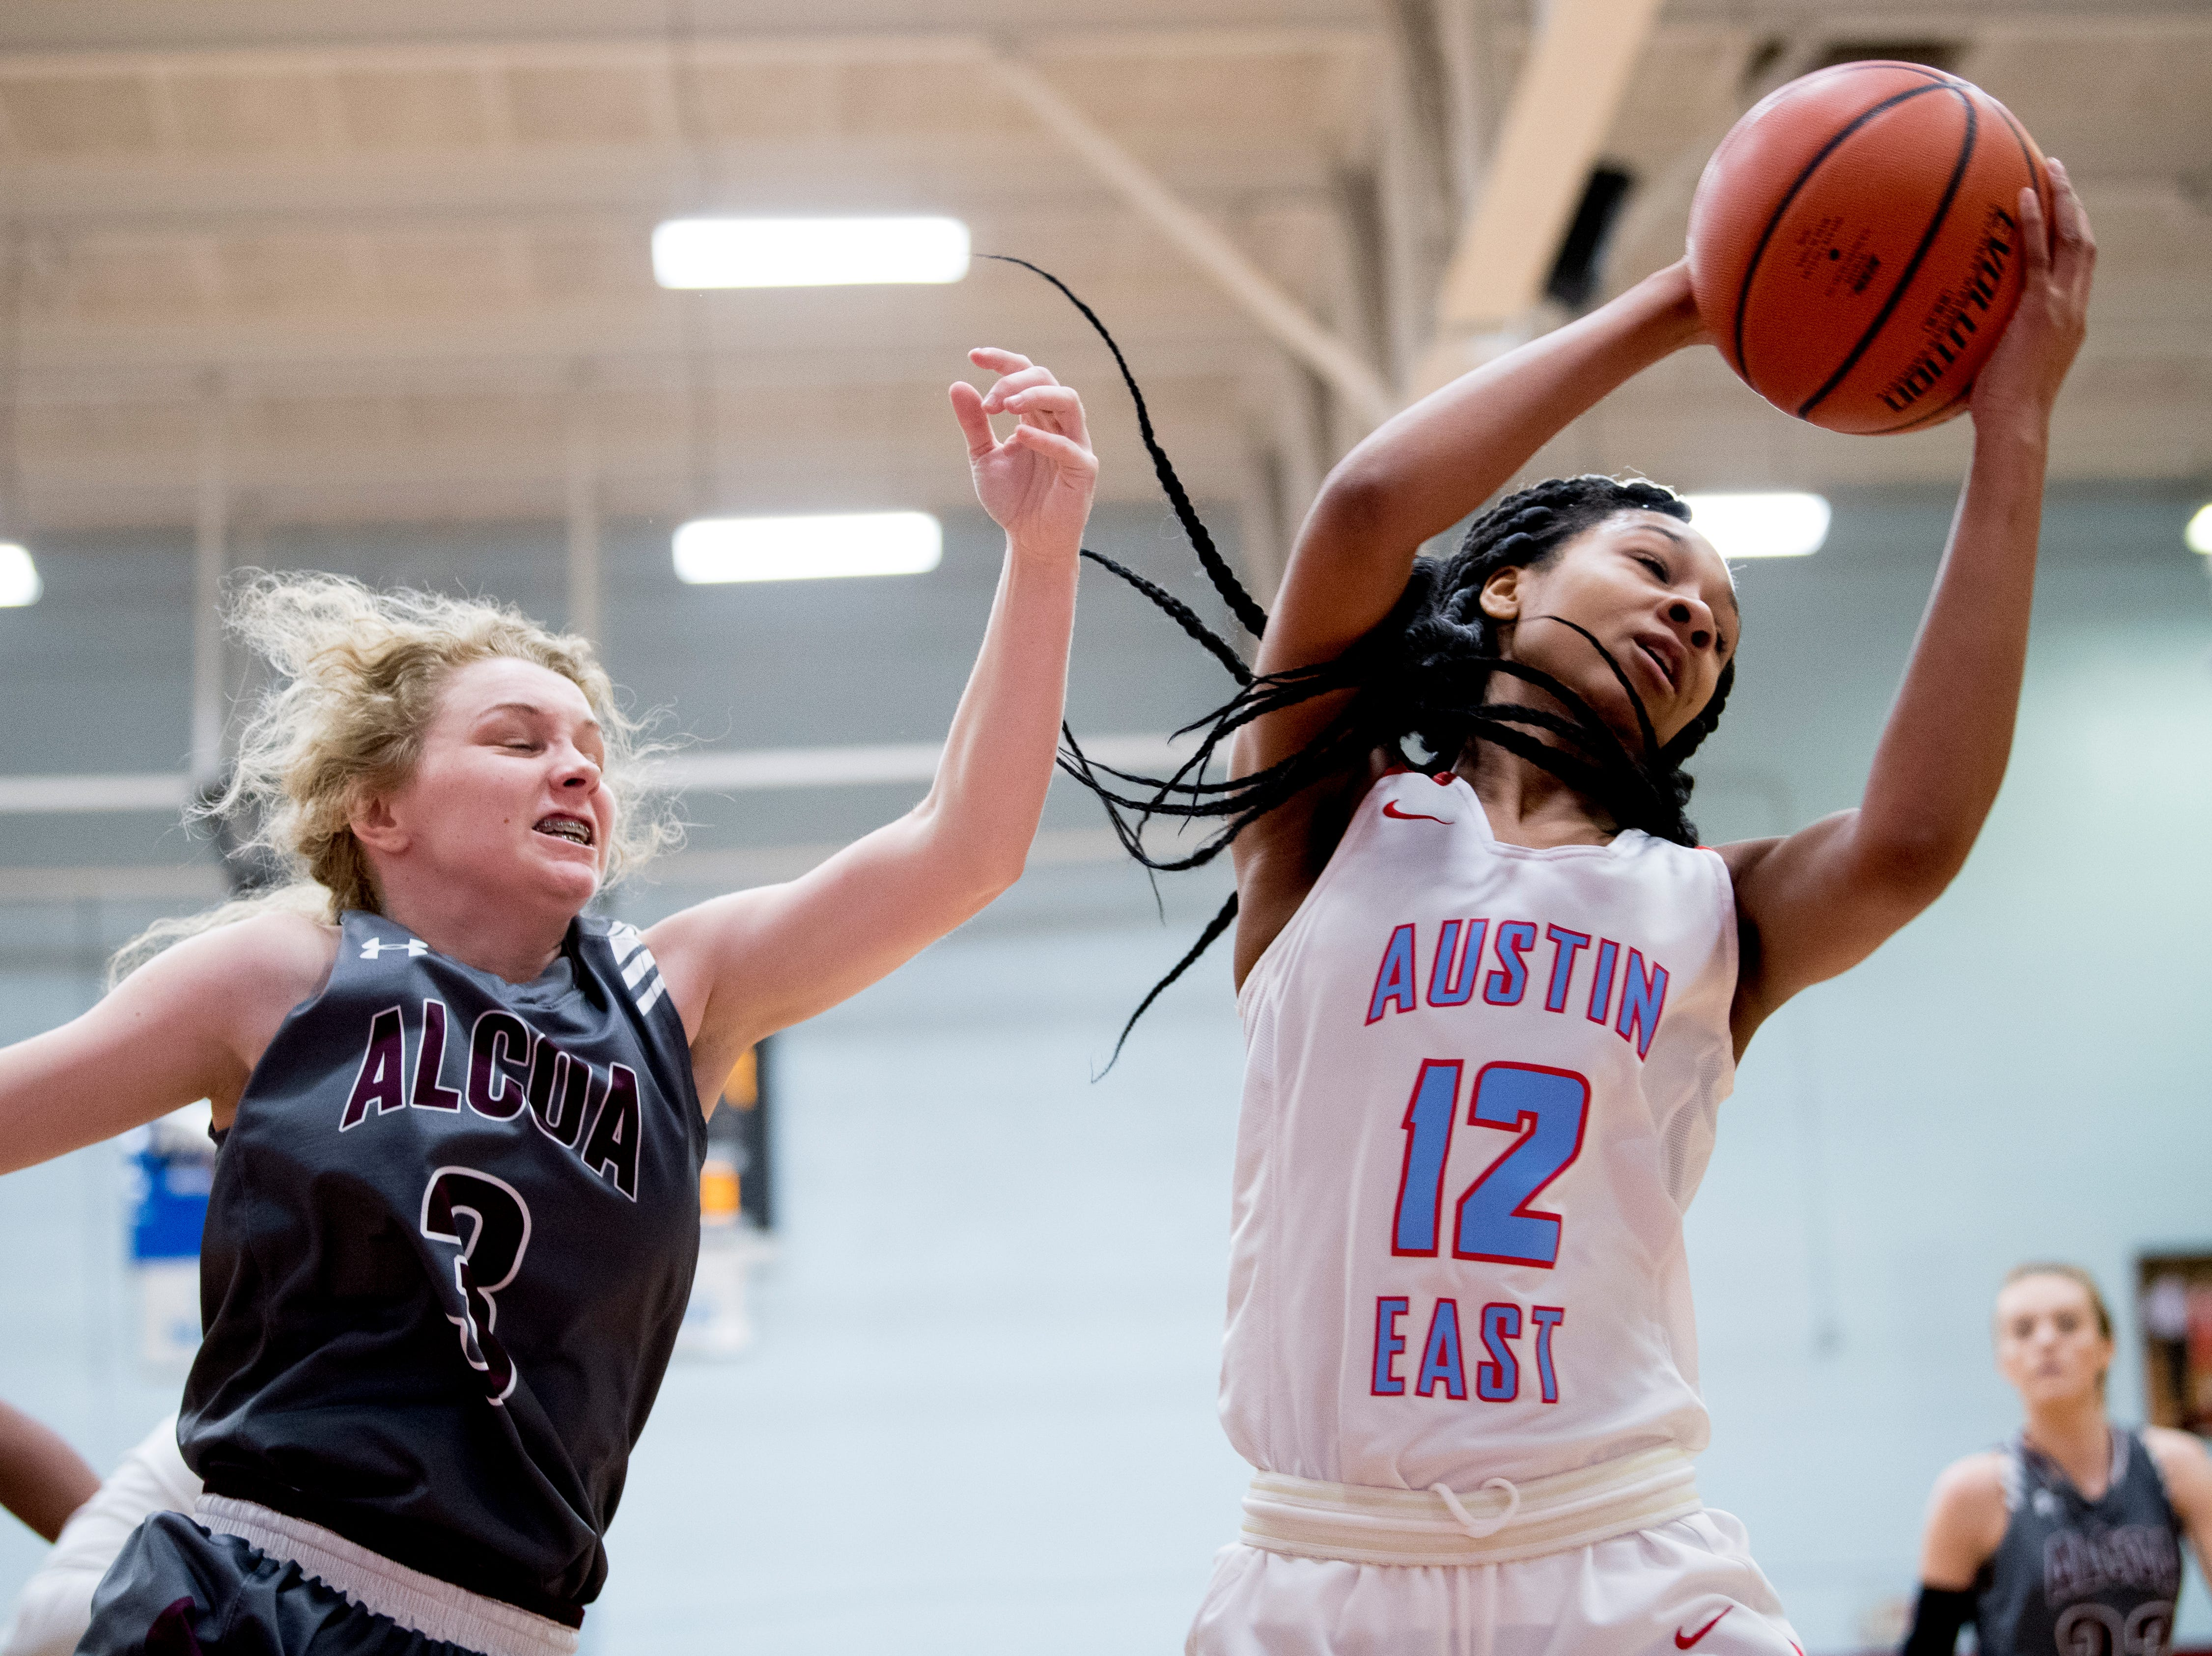 Austin-East's Trinity Turner (12) grabs the ball as Alcoa's Dee Dee Shodery (3) tries to defend during a game between Austin-East and Alcoa at Austin-East High School in Knoxville, Tennessee on Friday, January 18, 2019.